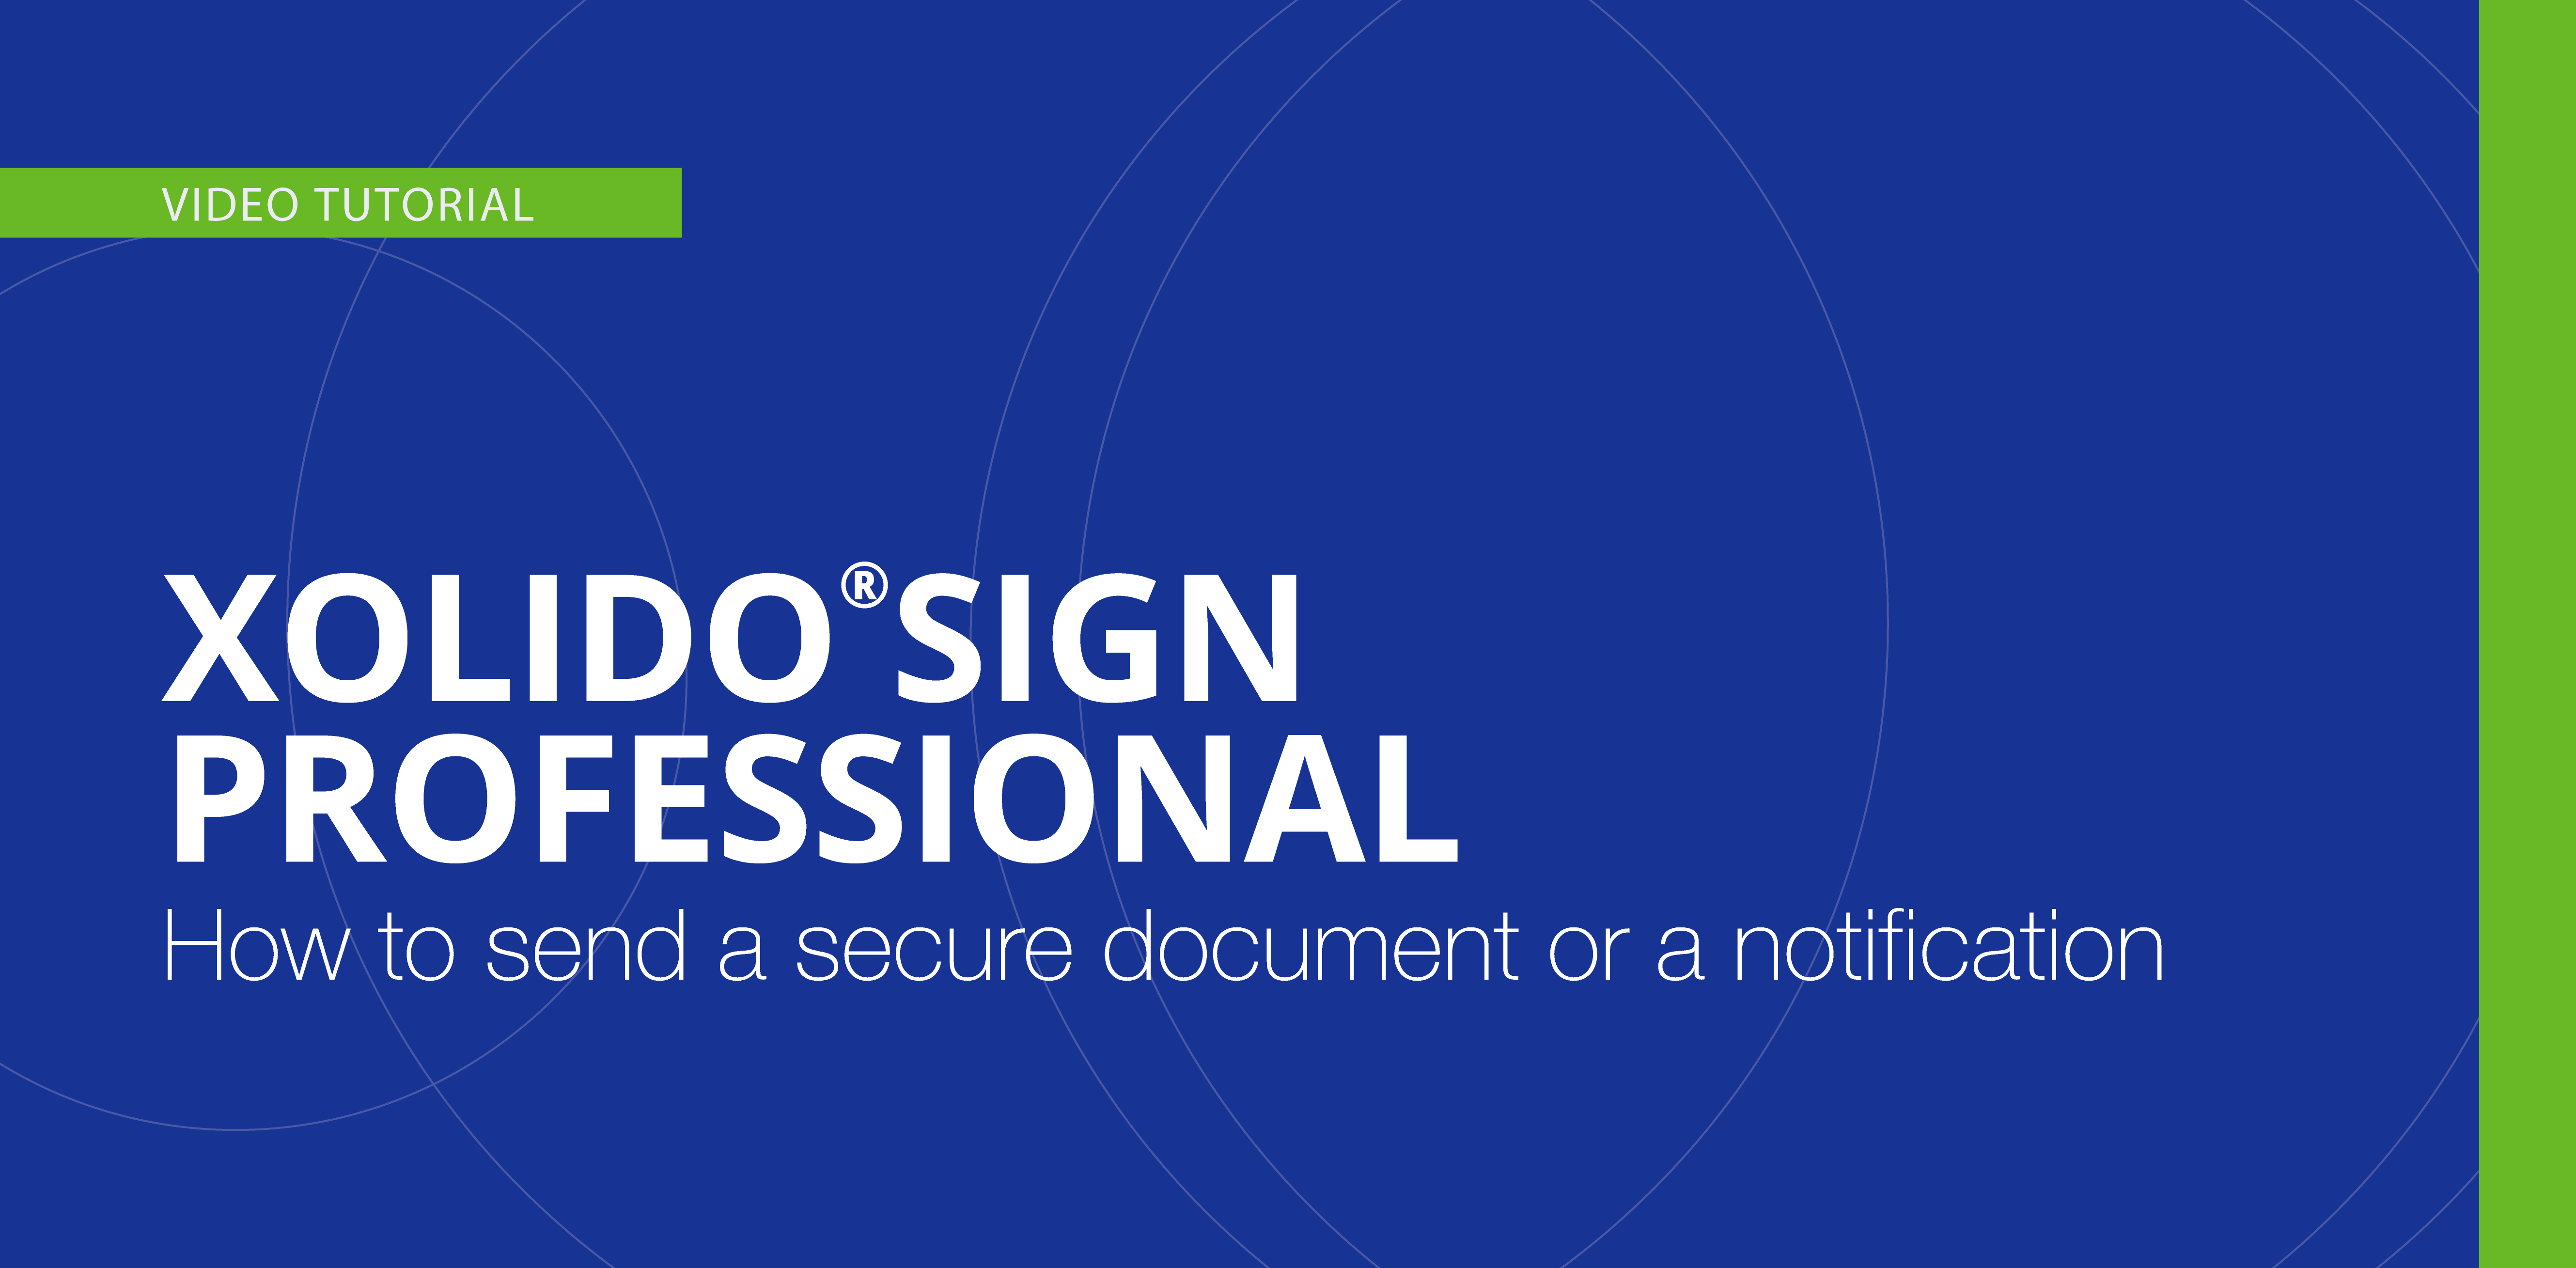 How to send a secure delivery and access of documents or a notification